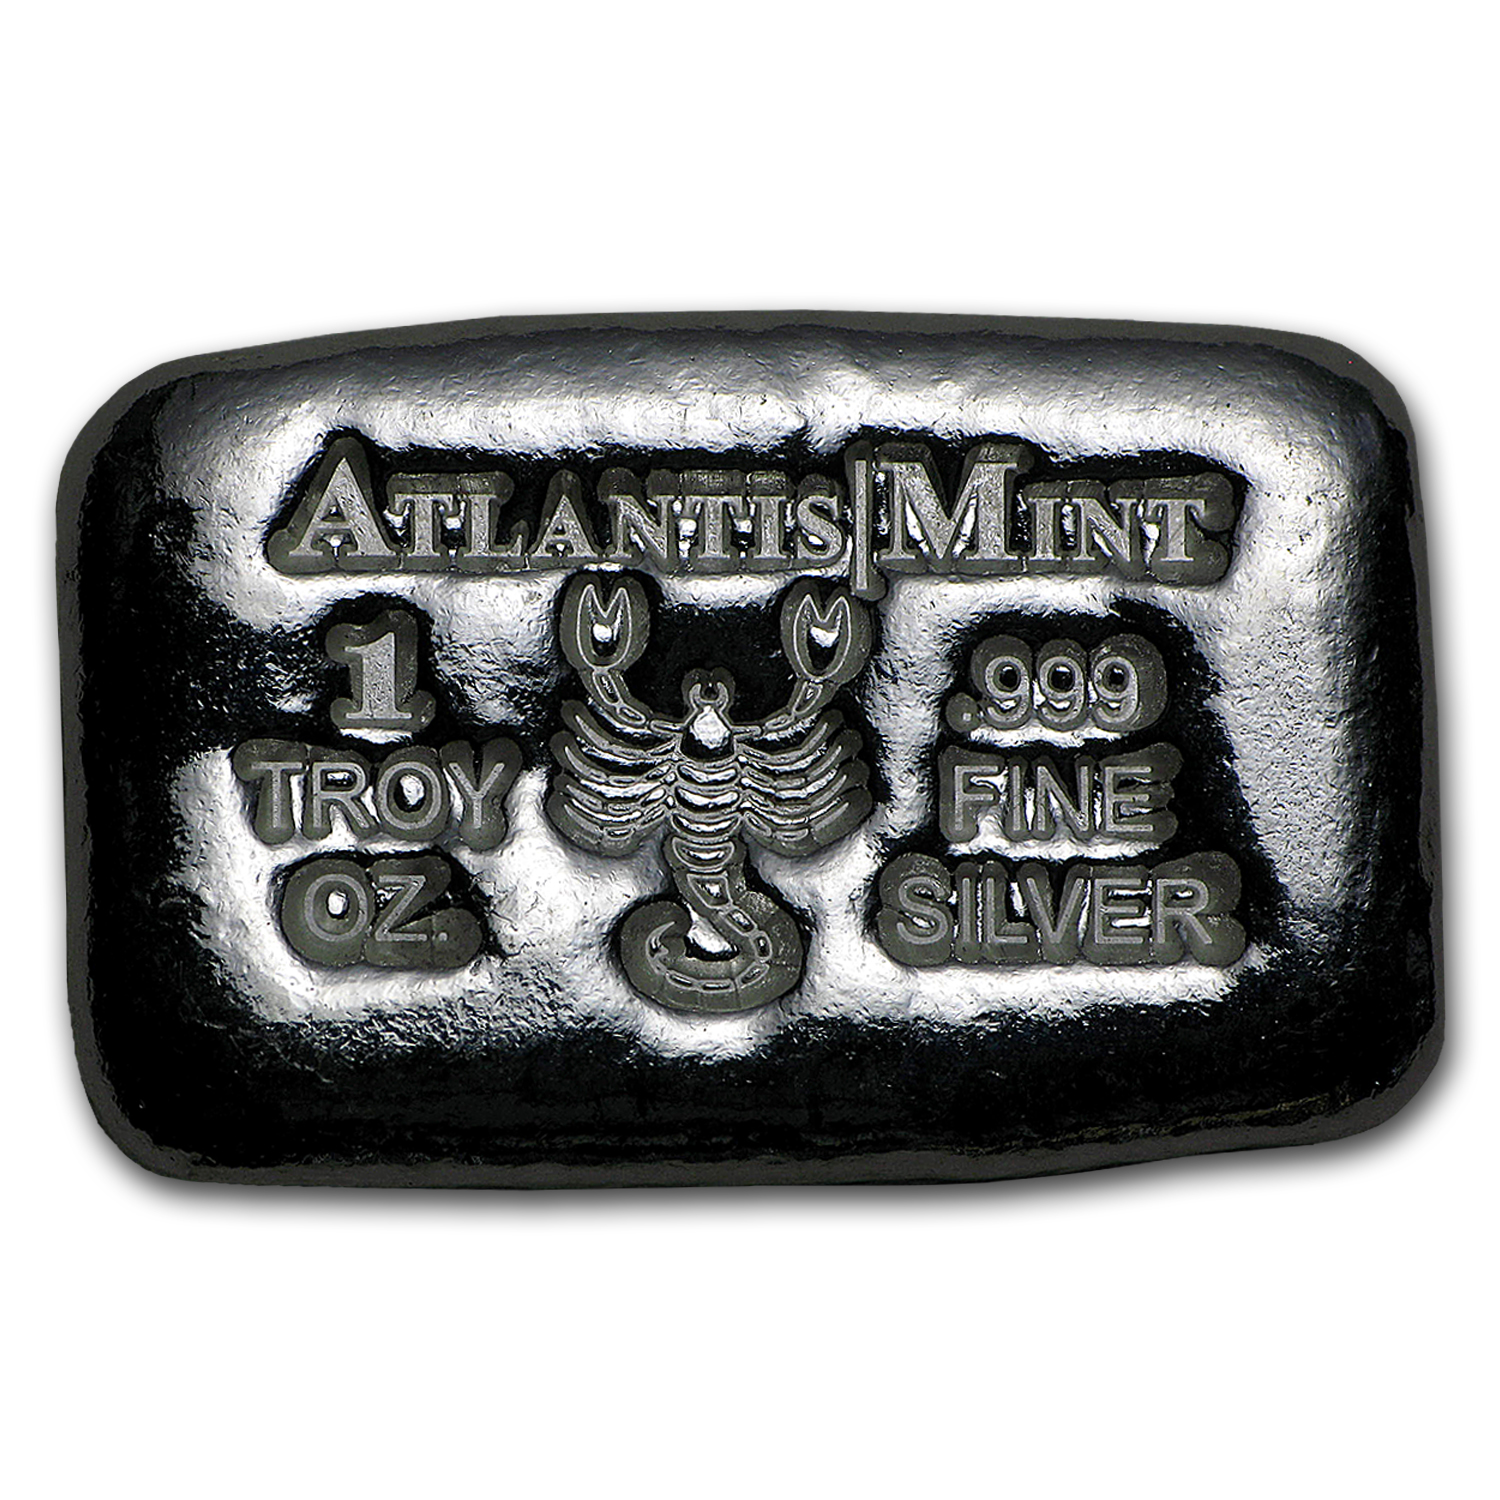 1 oz Silver Bar - Atlantis Mint (Zodiac Series, Scorpio)